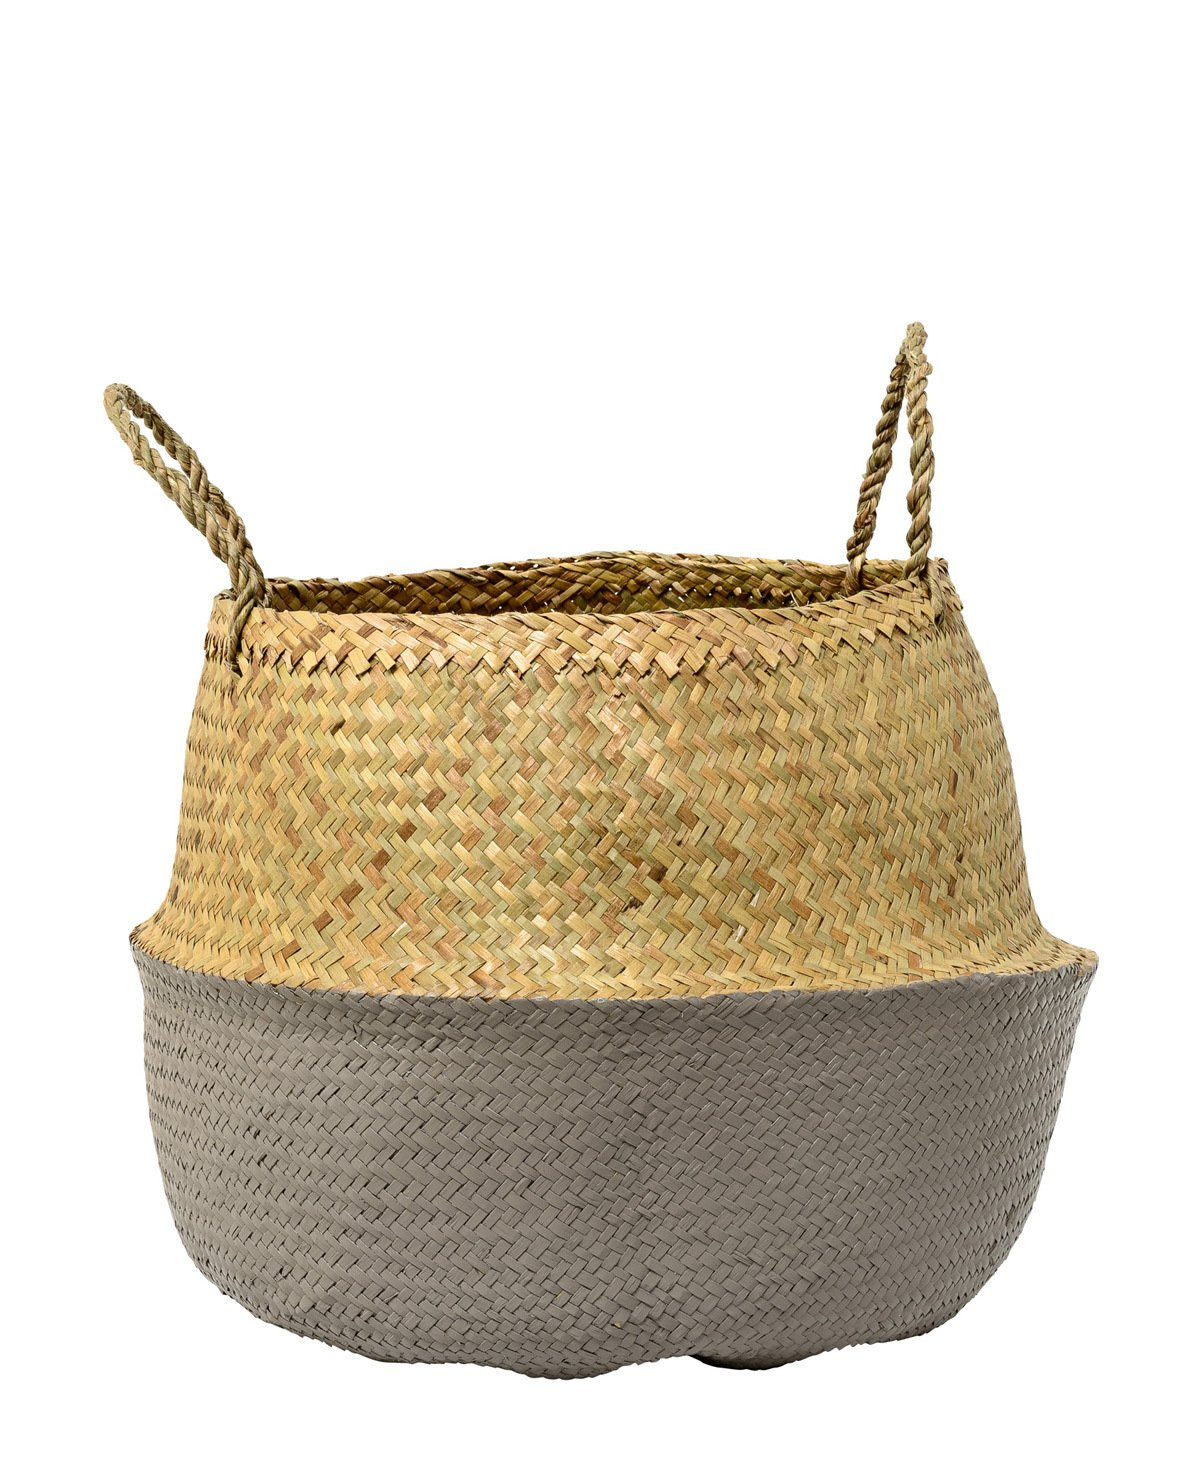 Bloomingville Grey And Natural Seagrass Basket with Handles